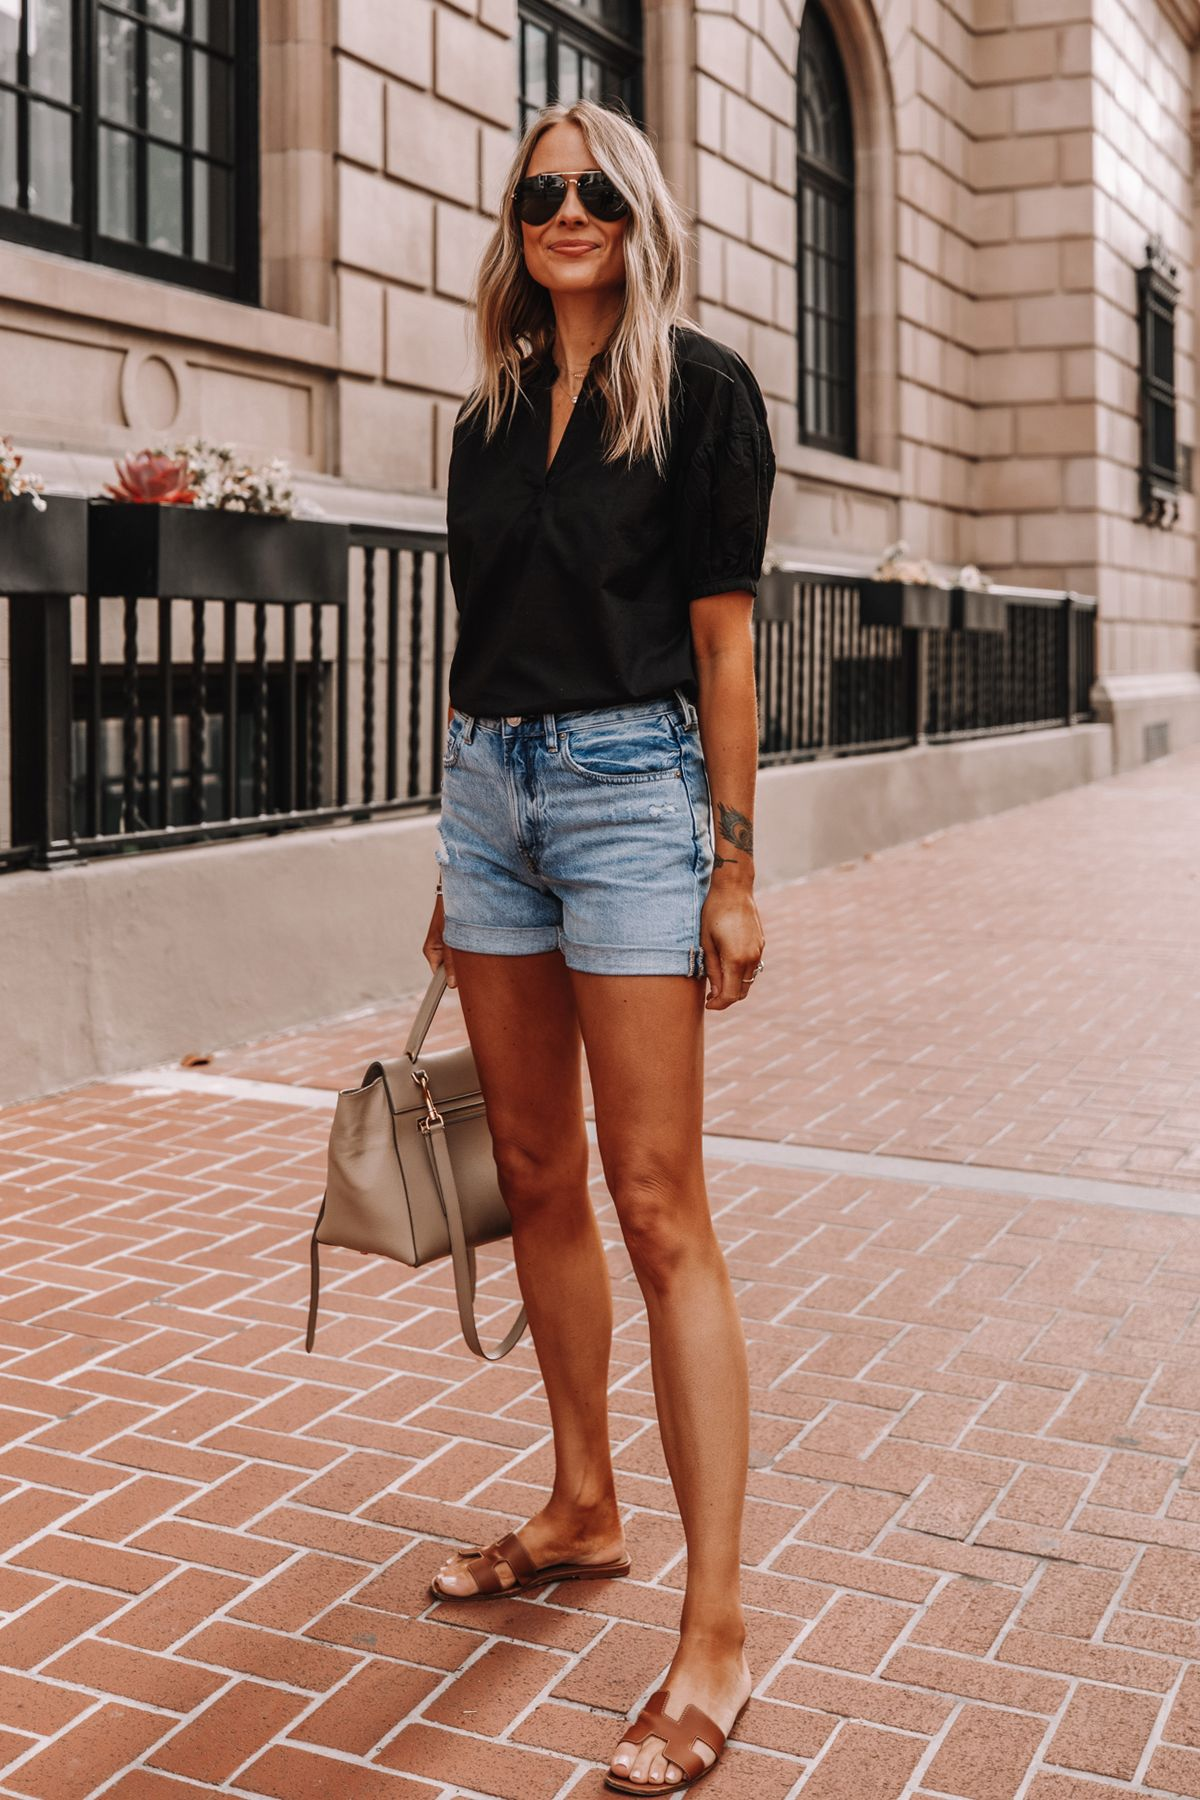 Effortless Weekend Outfit, Jean Shorts Outfit, Summer Jean Shorts Outfit, Cuffed Jean Shorts